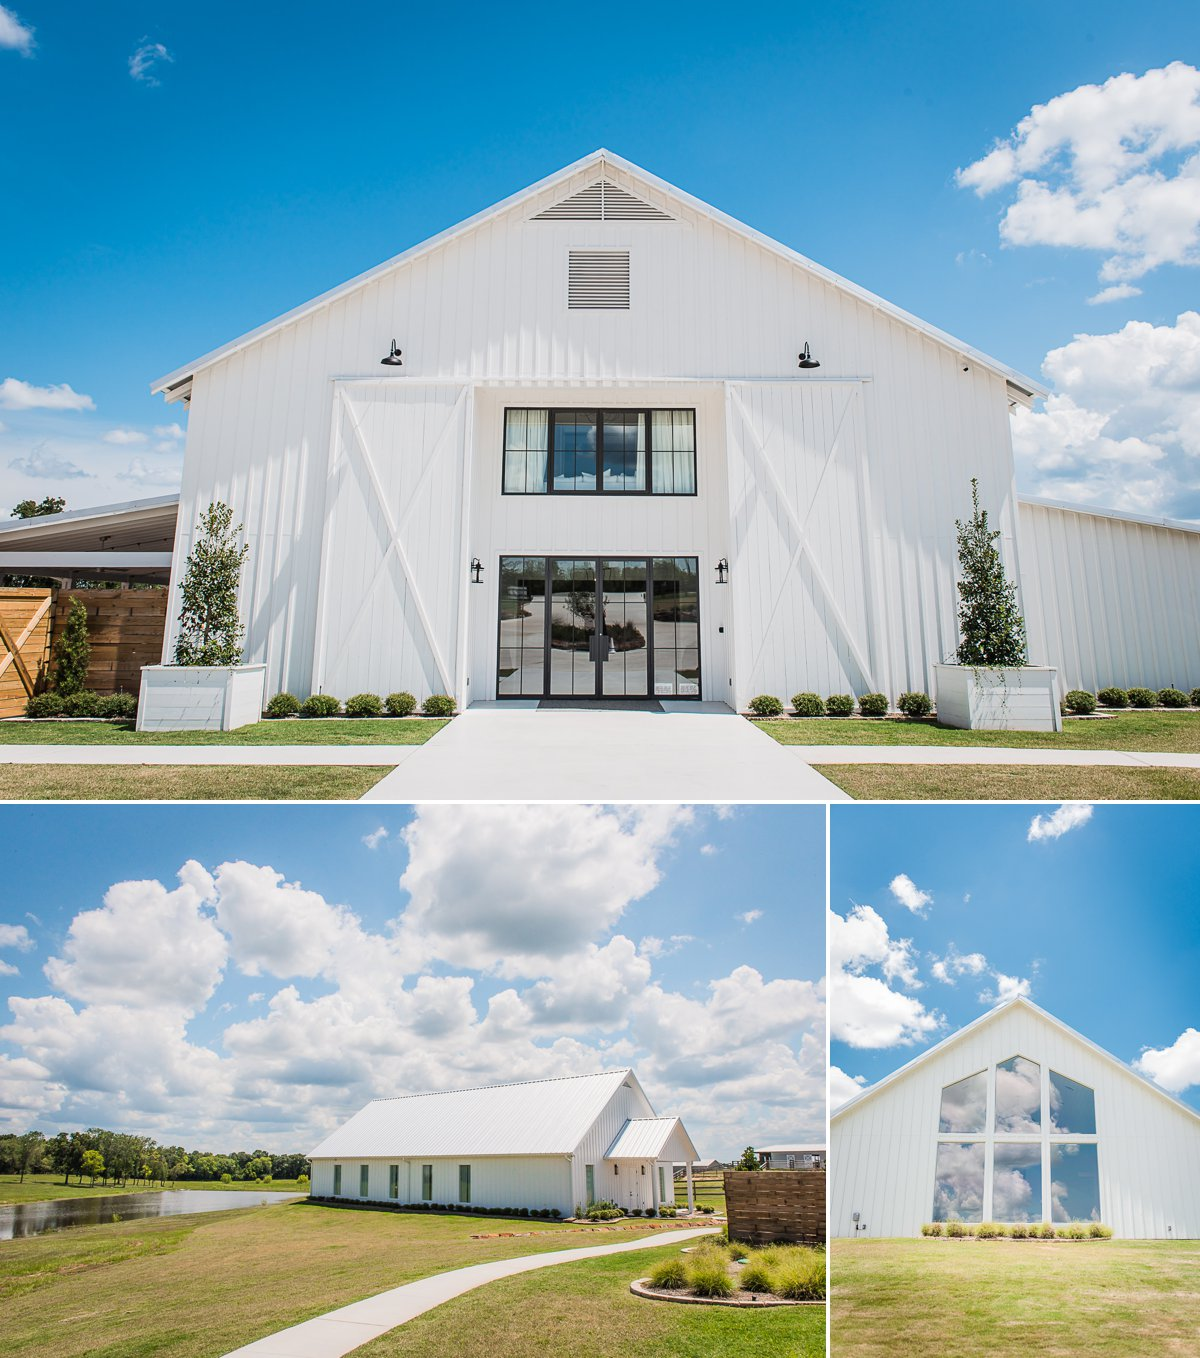 The Farmhouse Wedding venue in Houston